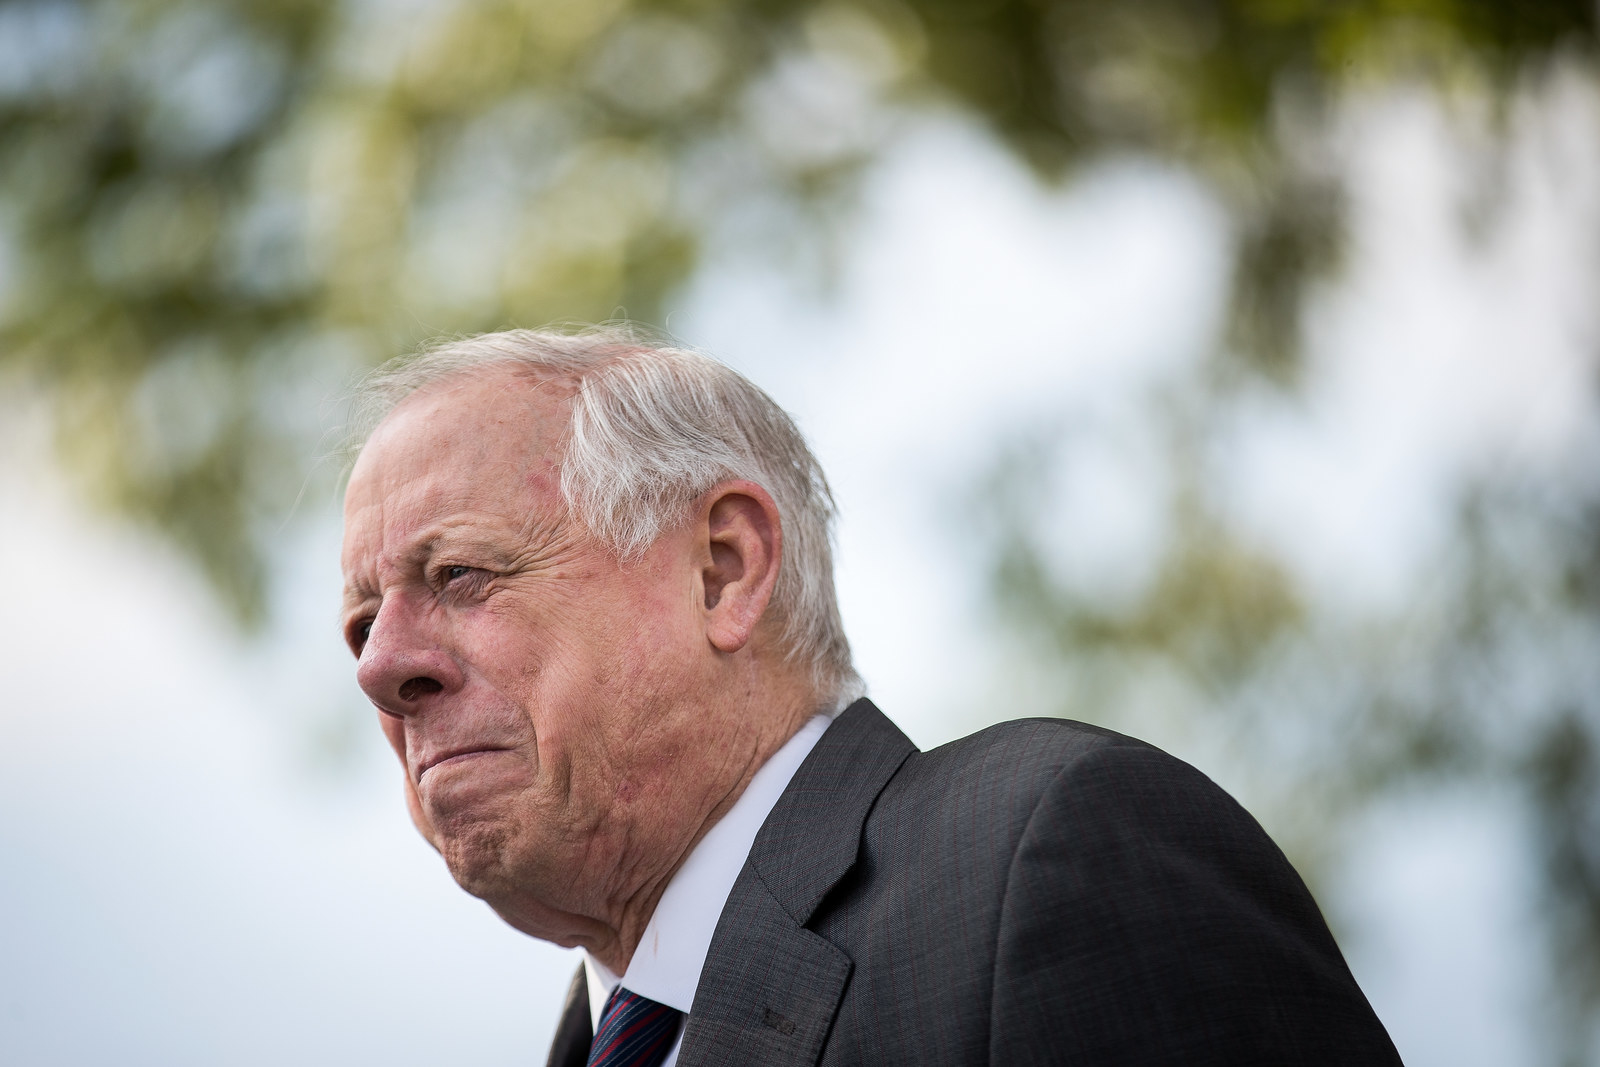 Bredesen at a groundbreaking event for a new Tyson Foods chicken processing plant, May 30, 2018, in Humboldt, Tennessee.